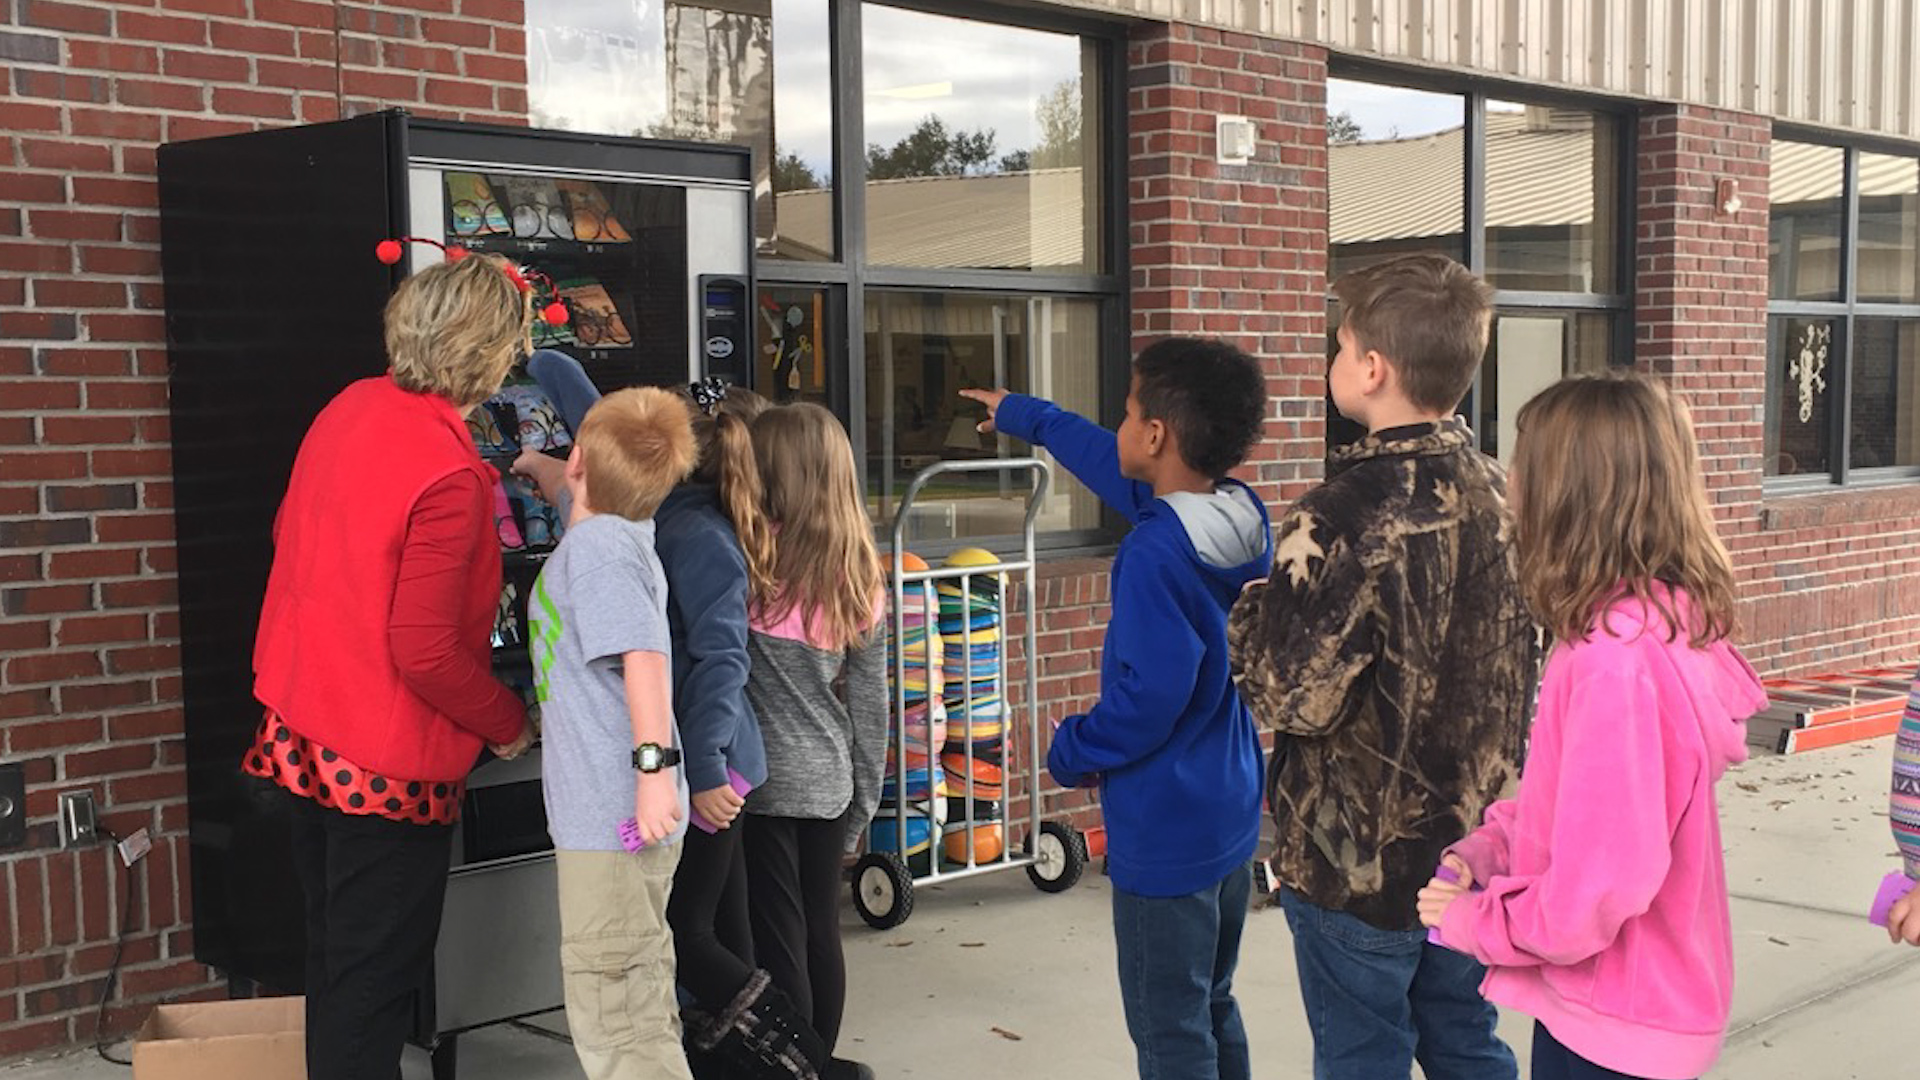 Elementary School Replaces Vending Machine Snacks With Books